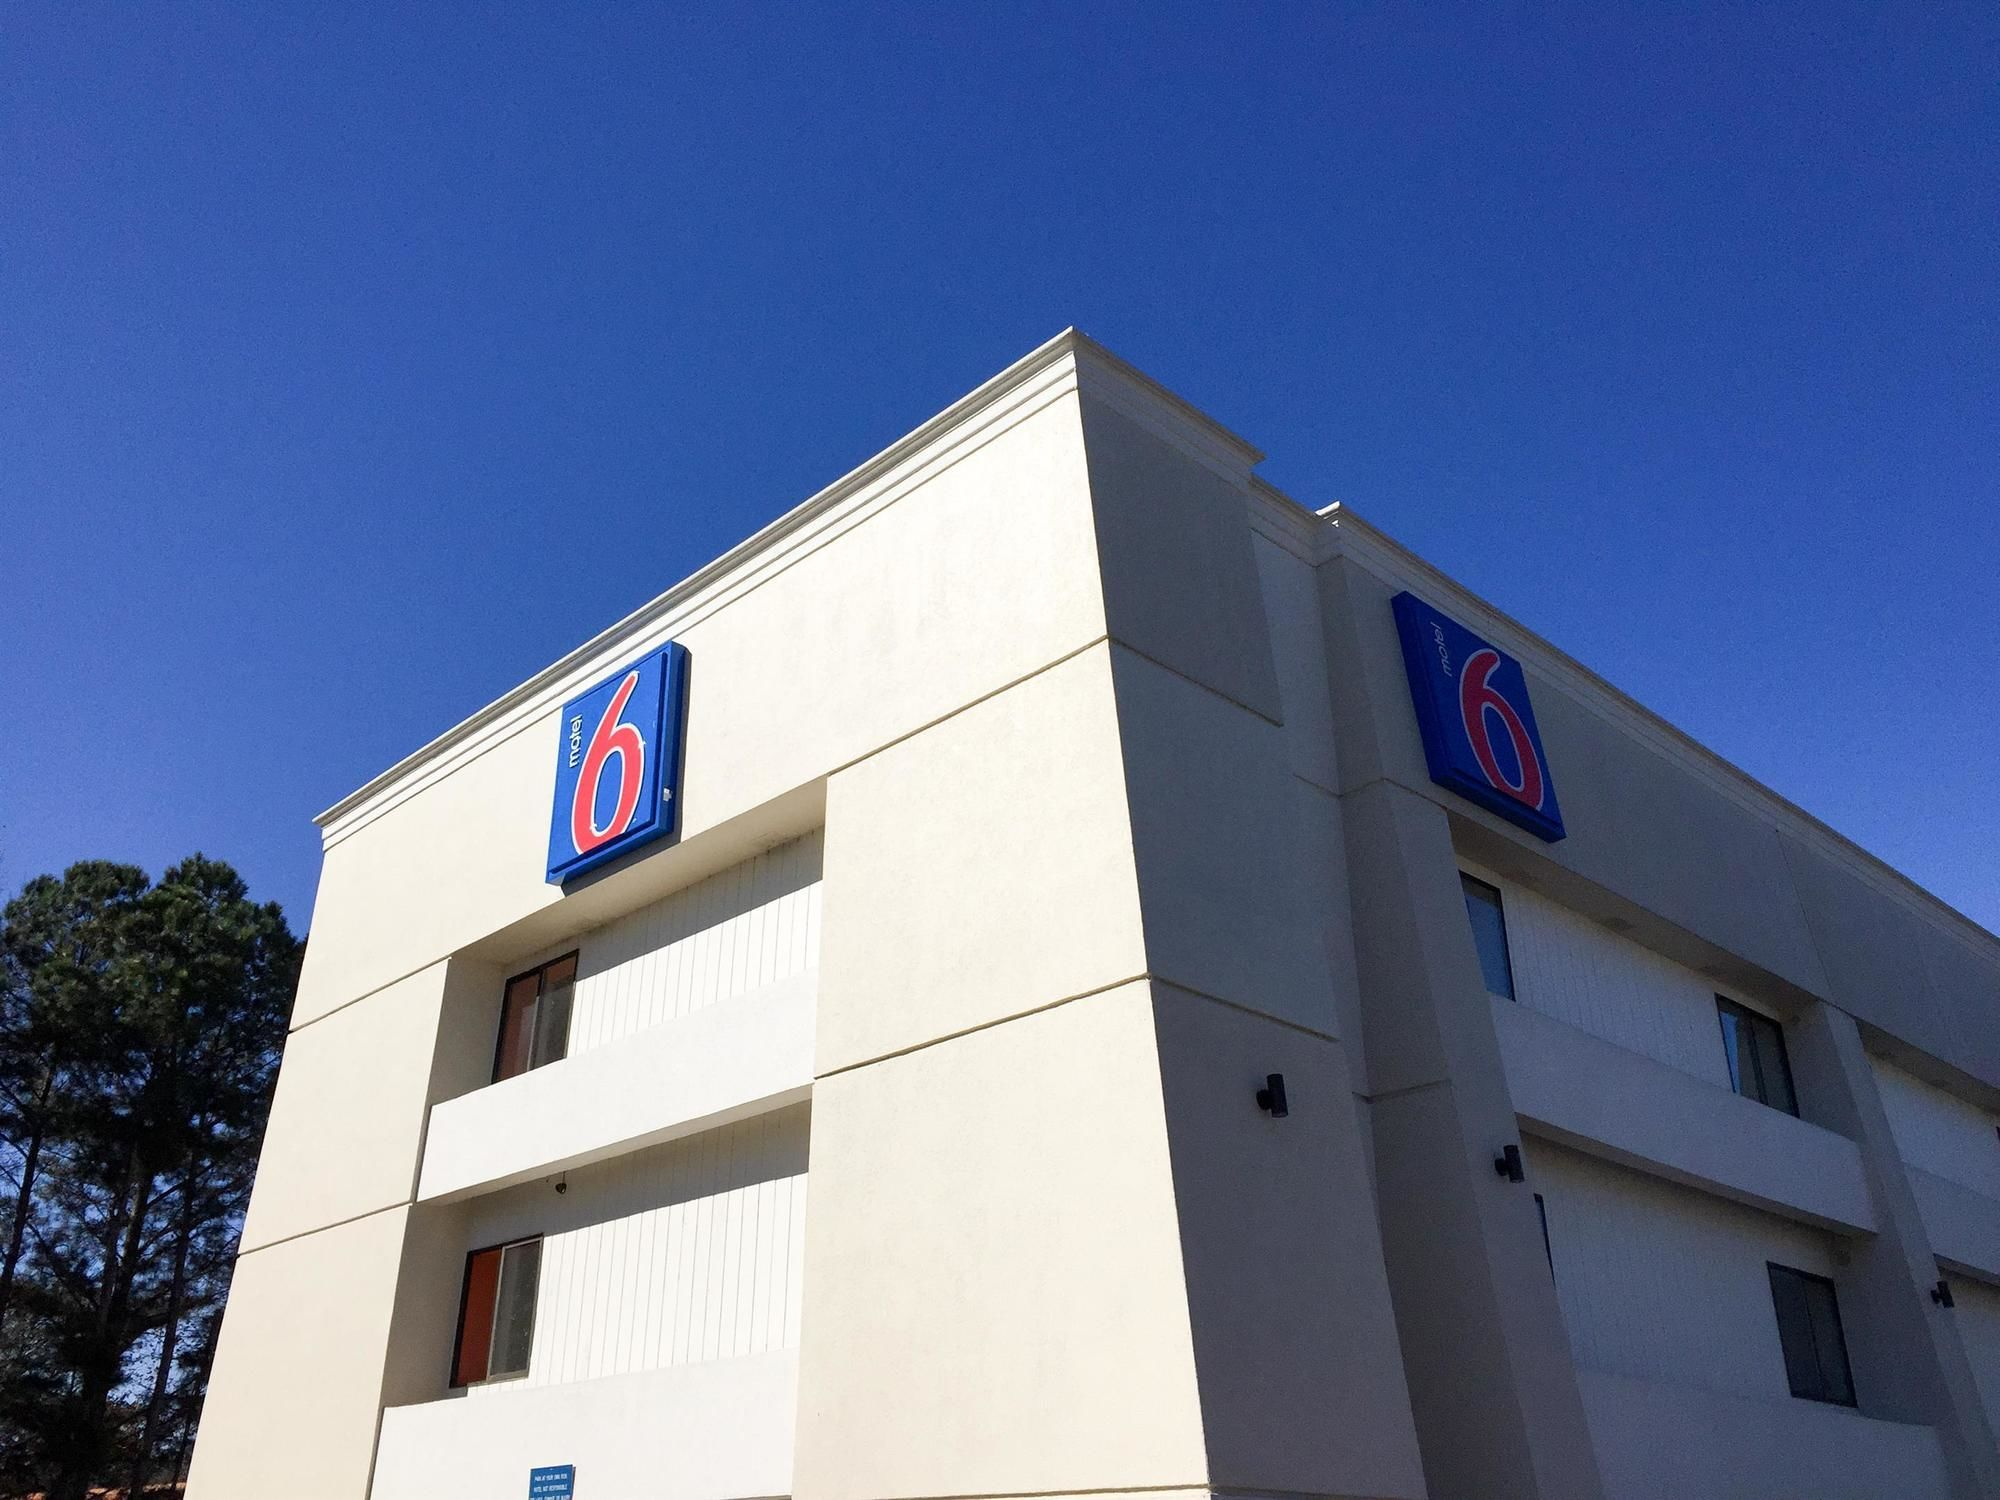 Motel 6 Norcross in Norcross, GA